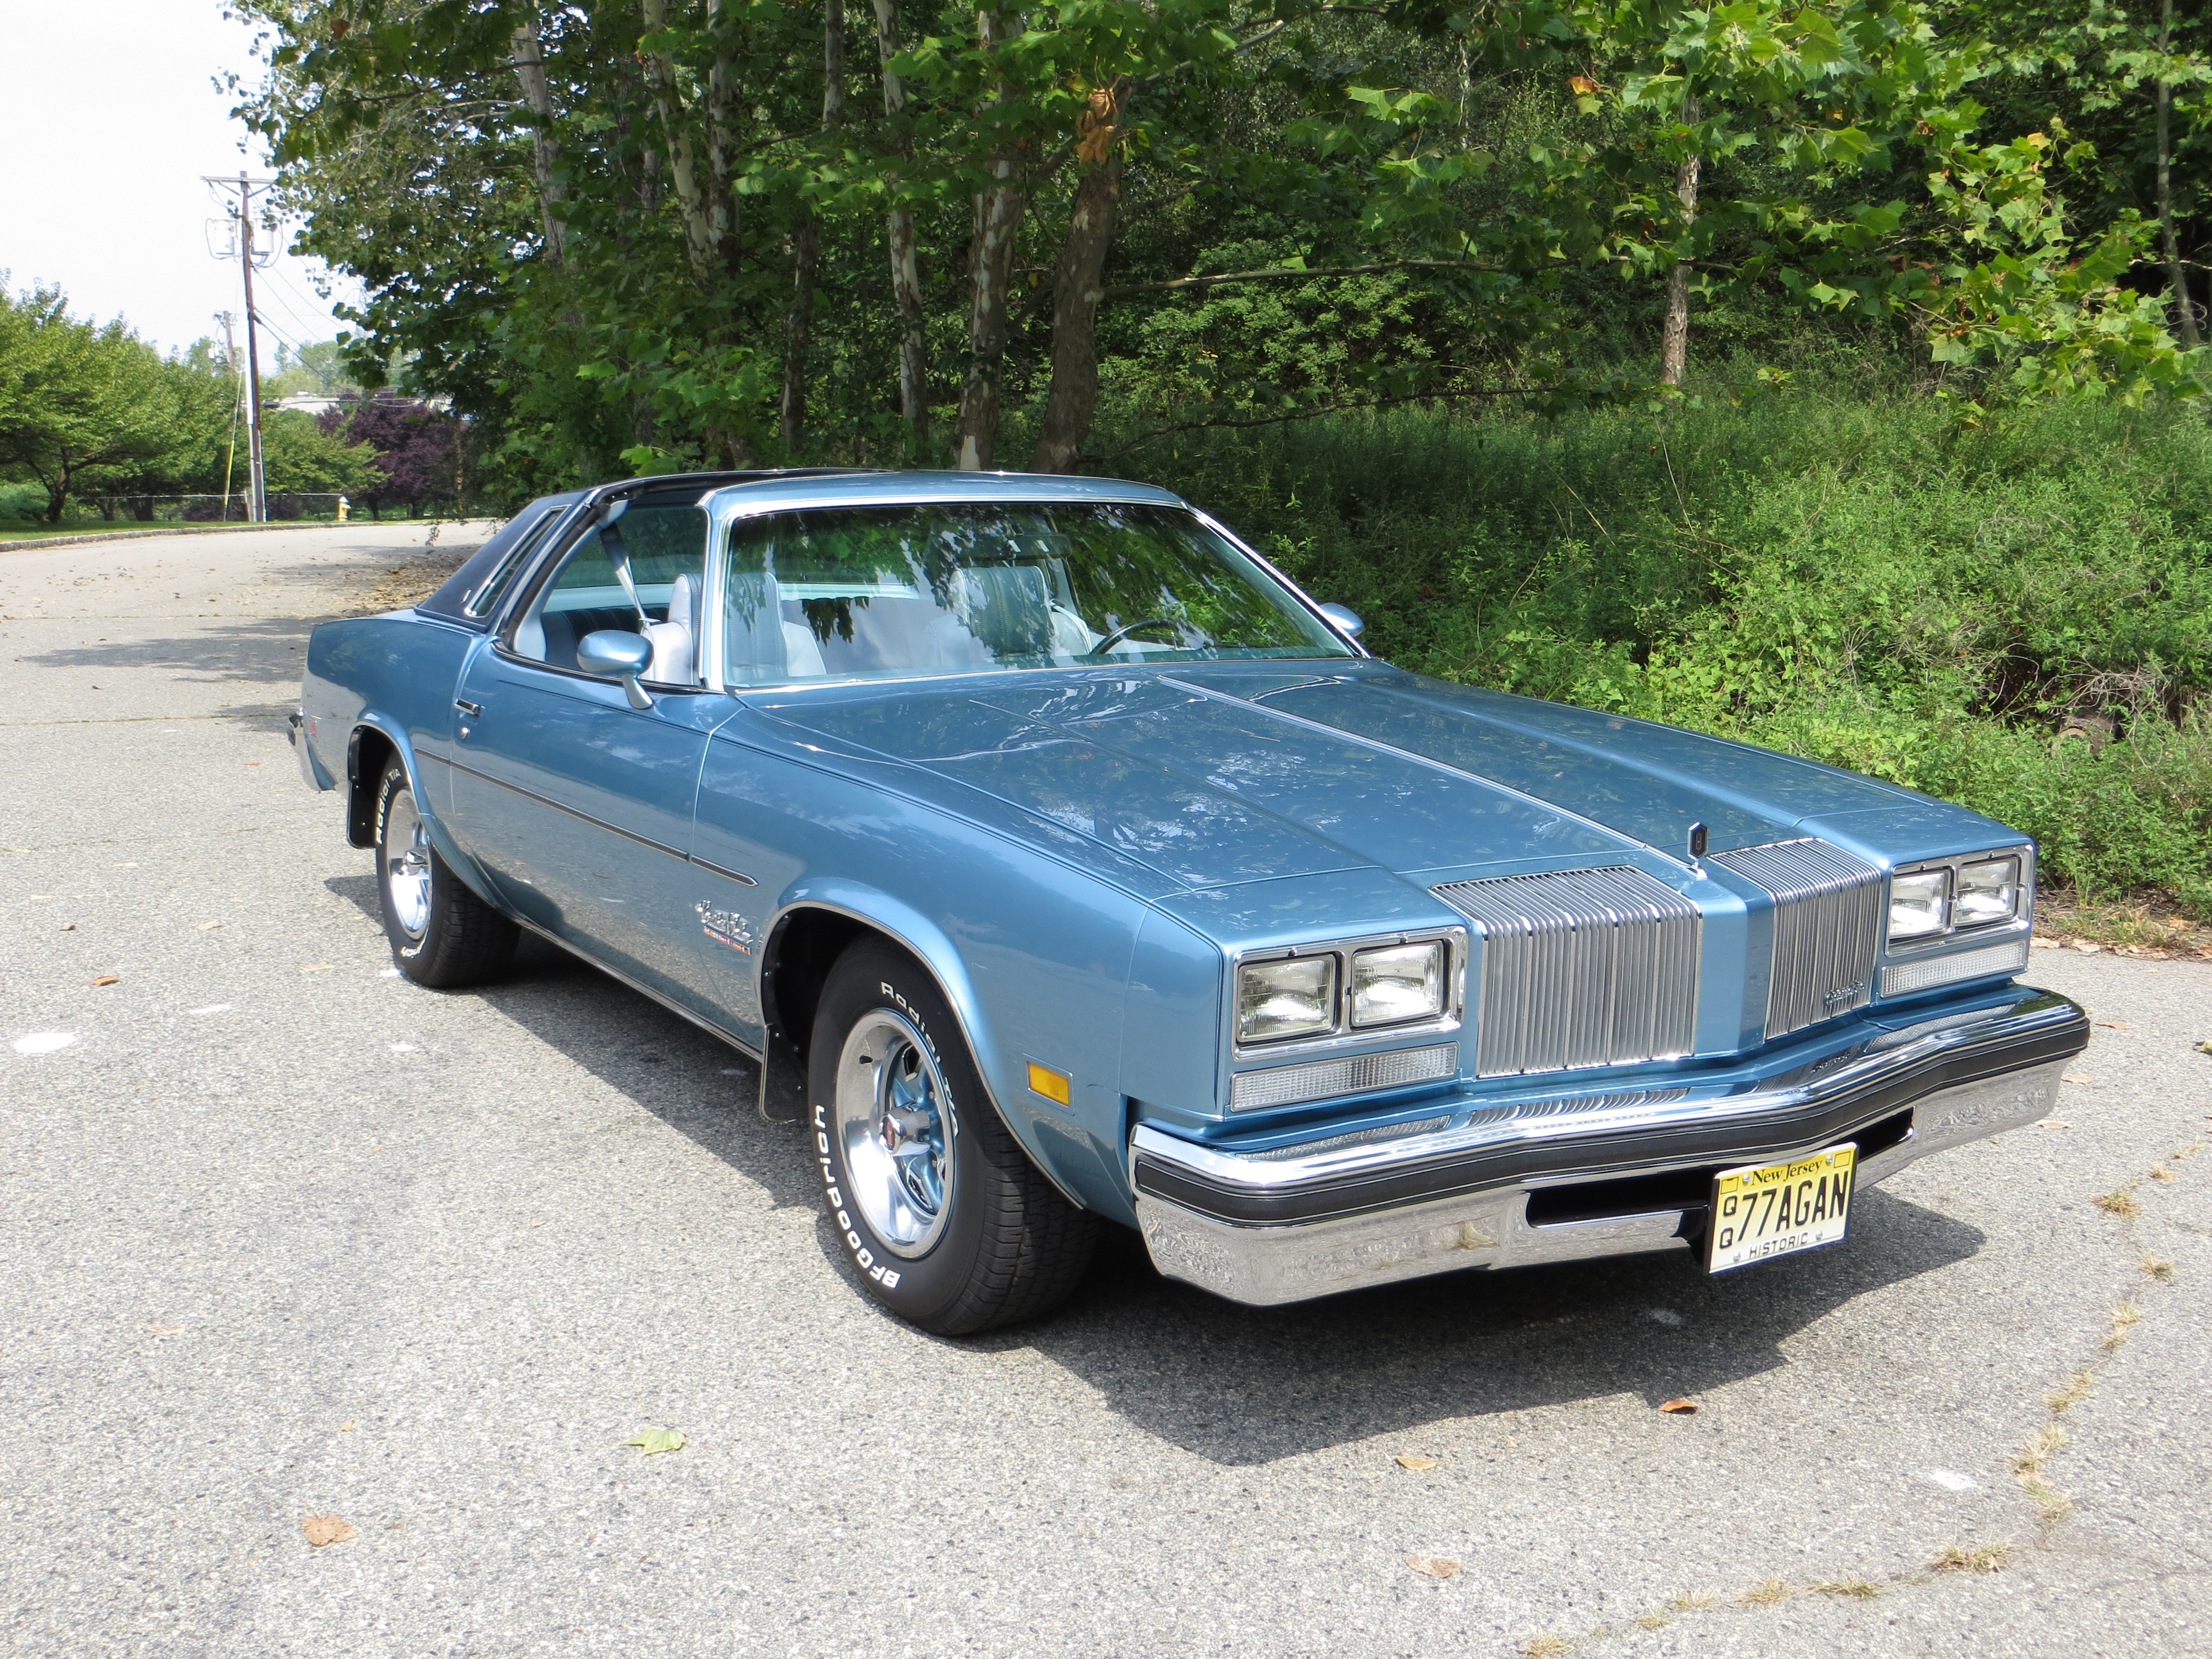 Big blue 1977 cutlass salon oldsmobile photes for 1977 cutlass salon for sale